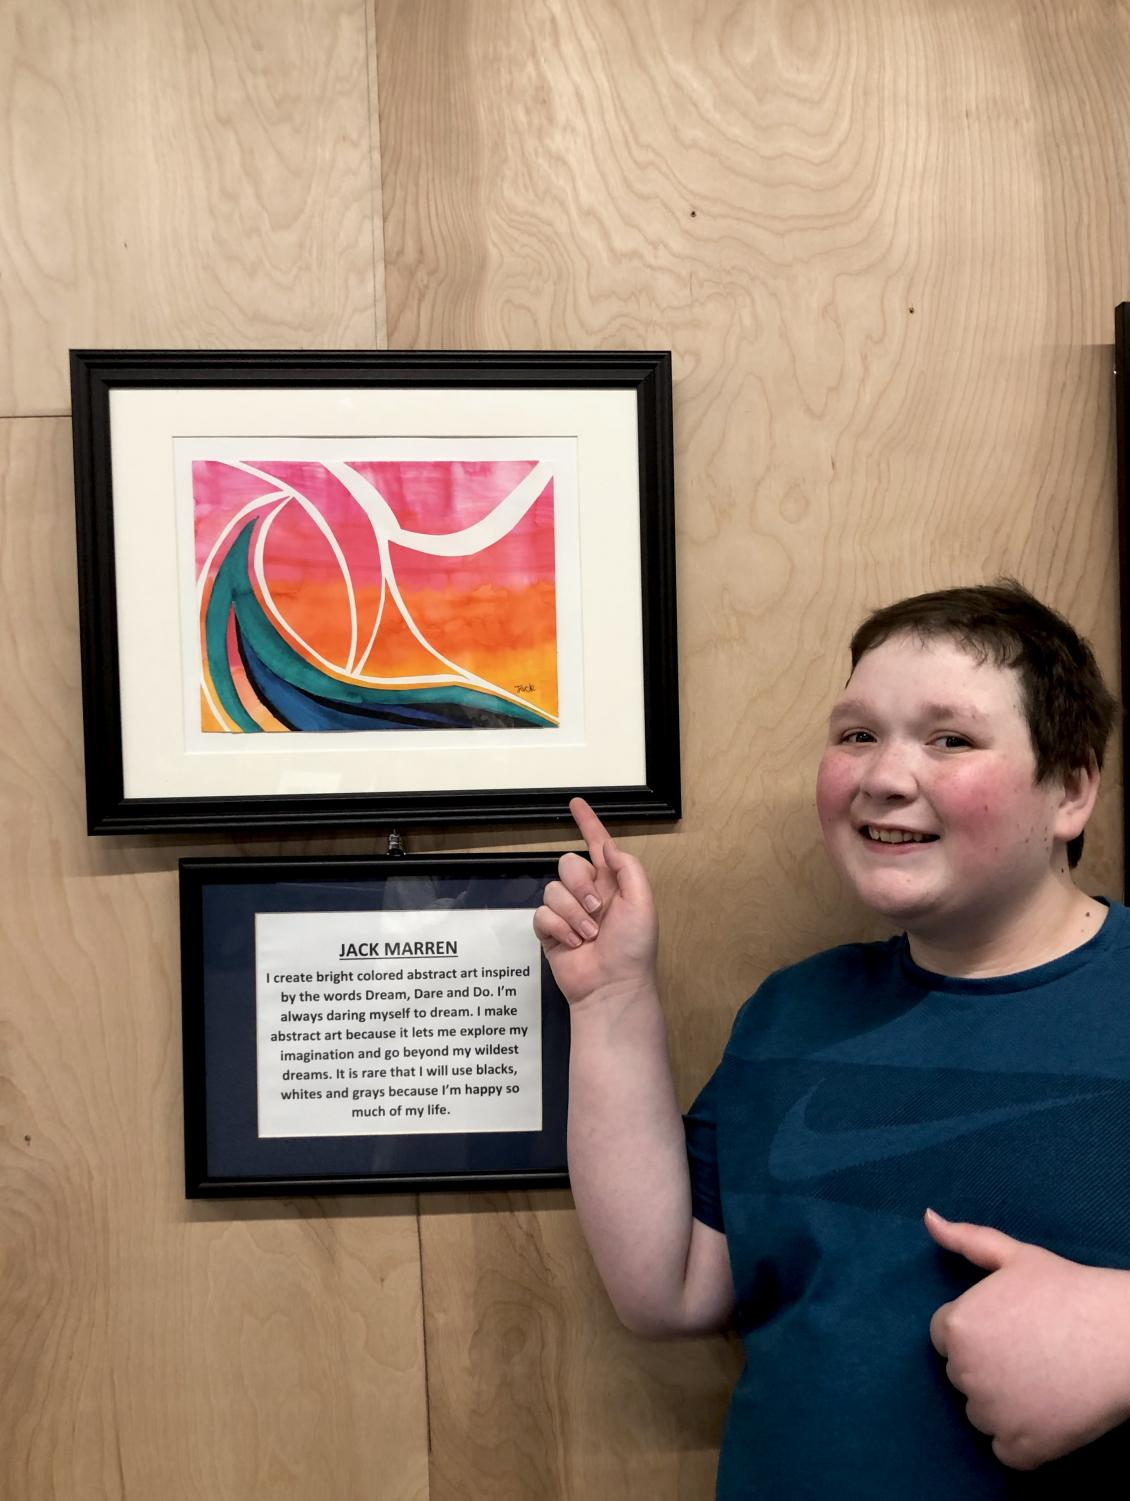 Jack Marren '22 poses for a photo next to his piece that won the t-shirt design contest at the art show at Mainframe Studios on Sep. 6. Underneath the artwork is a statement that he wrote about why he loves this type of art.